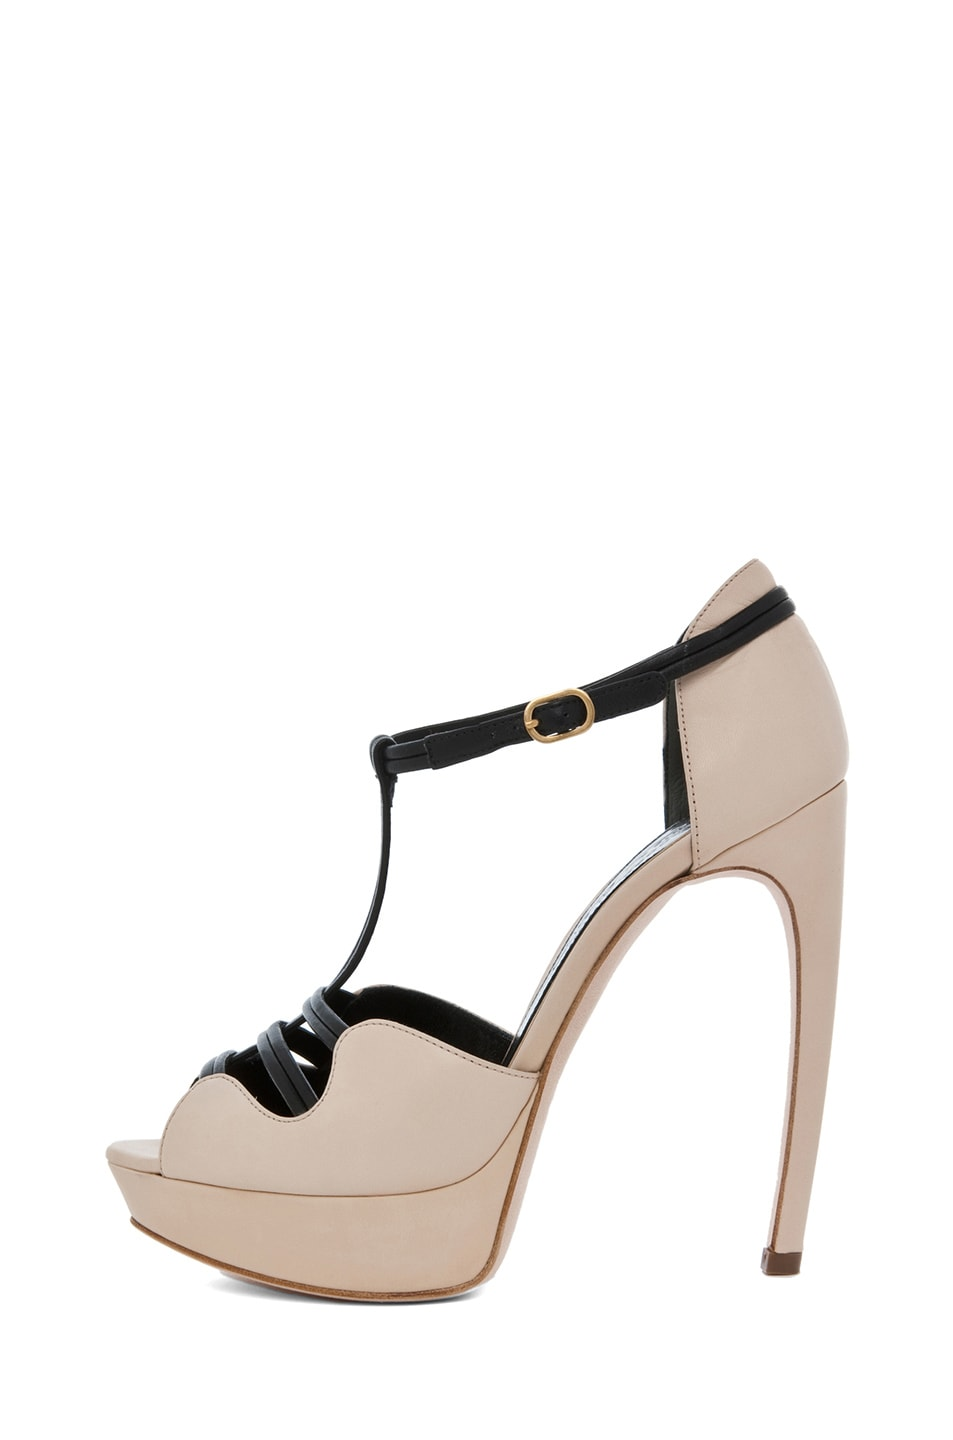 Image 1 of Alexander McQueen T Strap Heel in Blush & Black